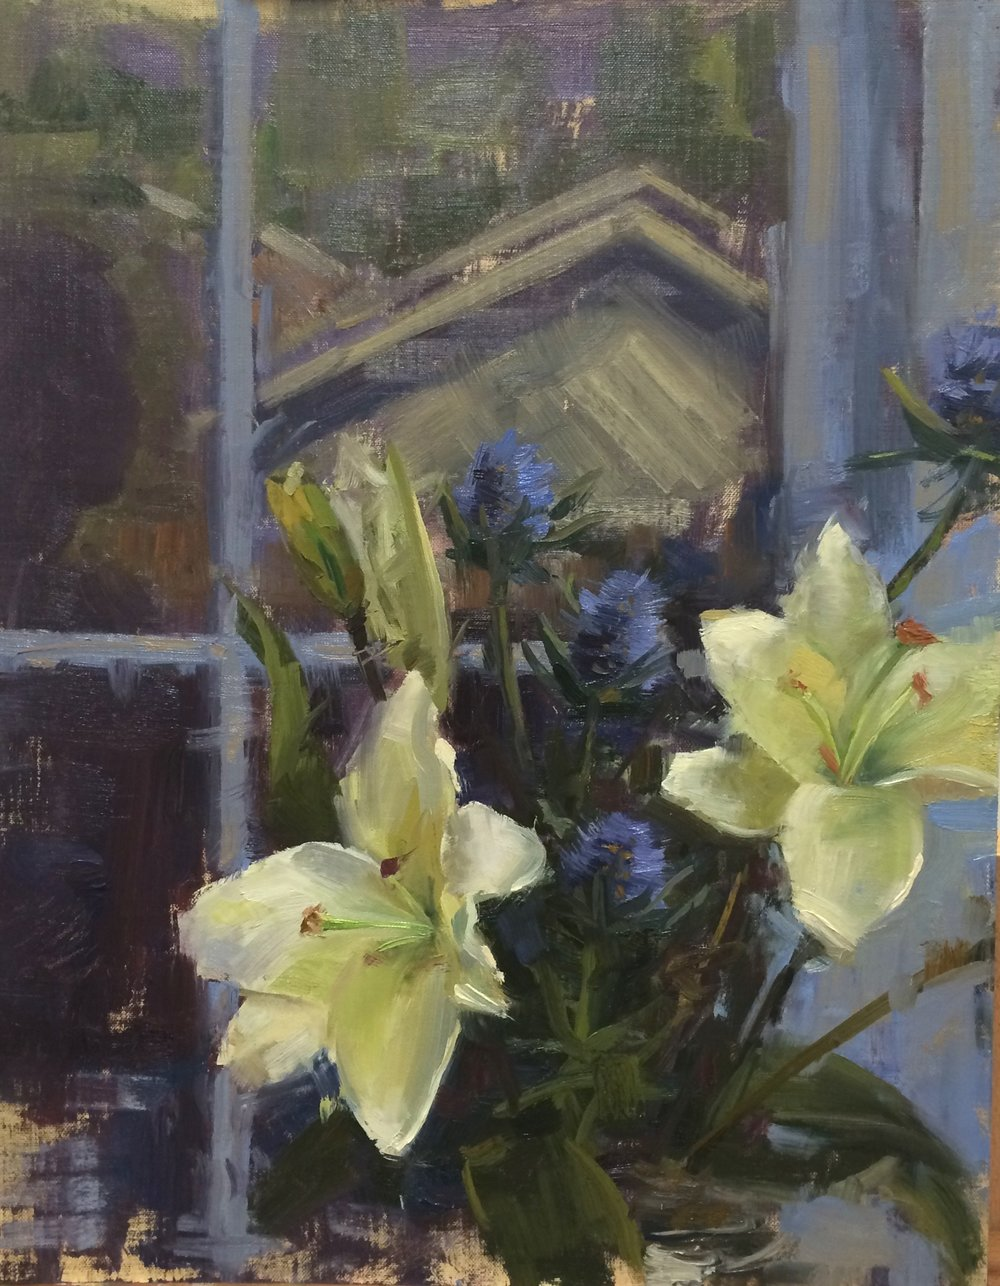 Reflected Lilies, 12 x 16 inches, Oil on linen